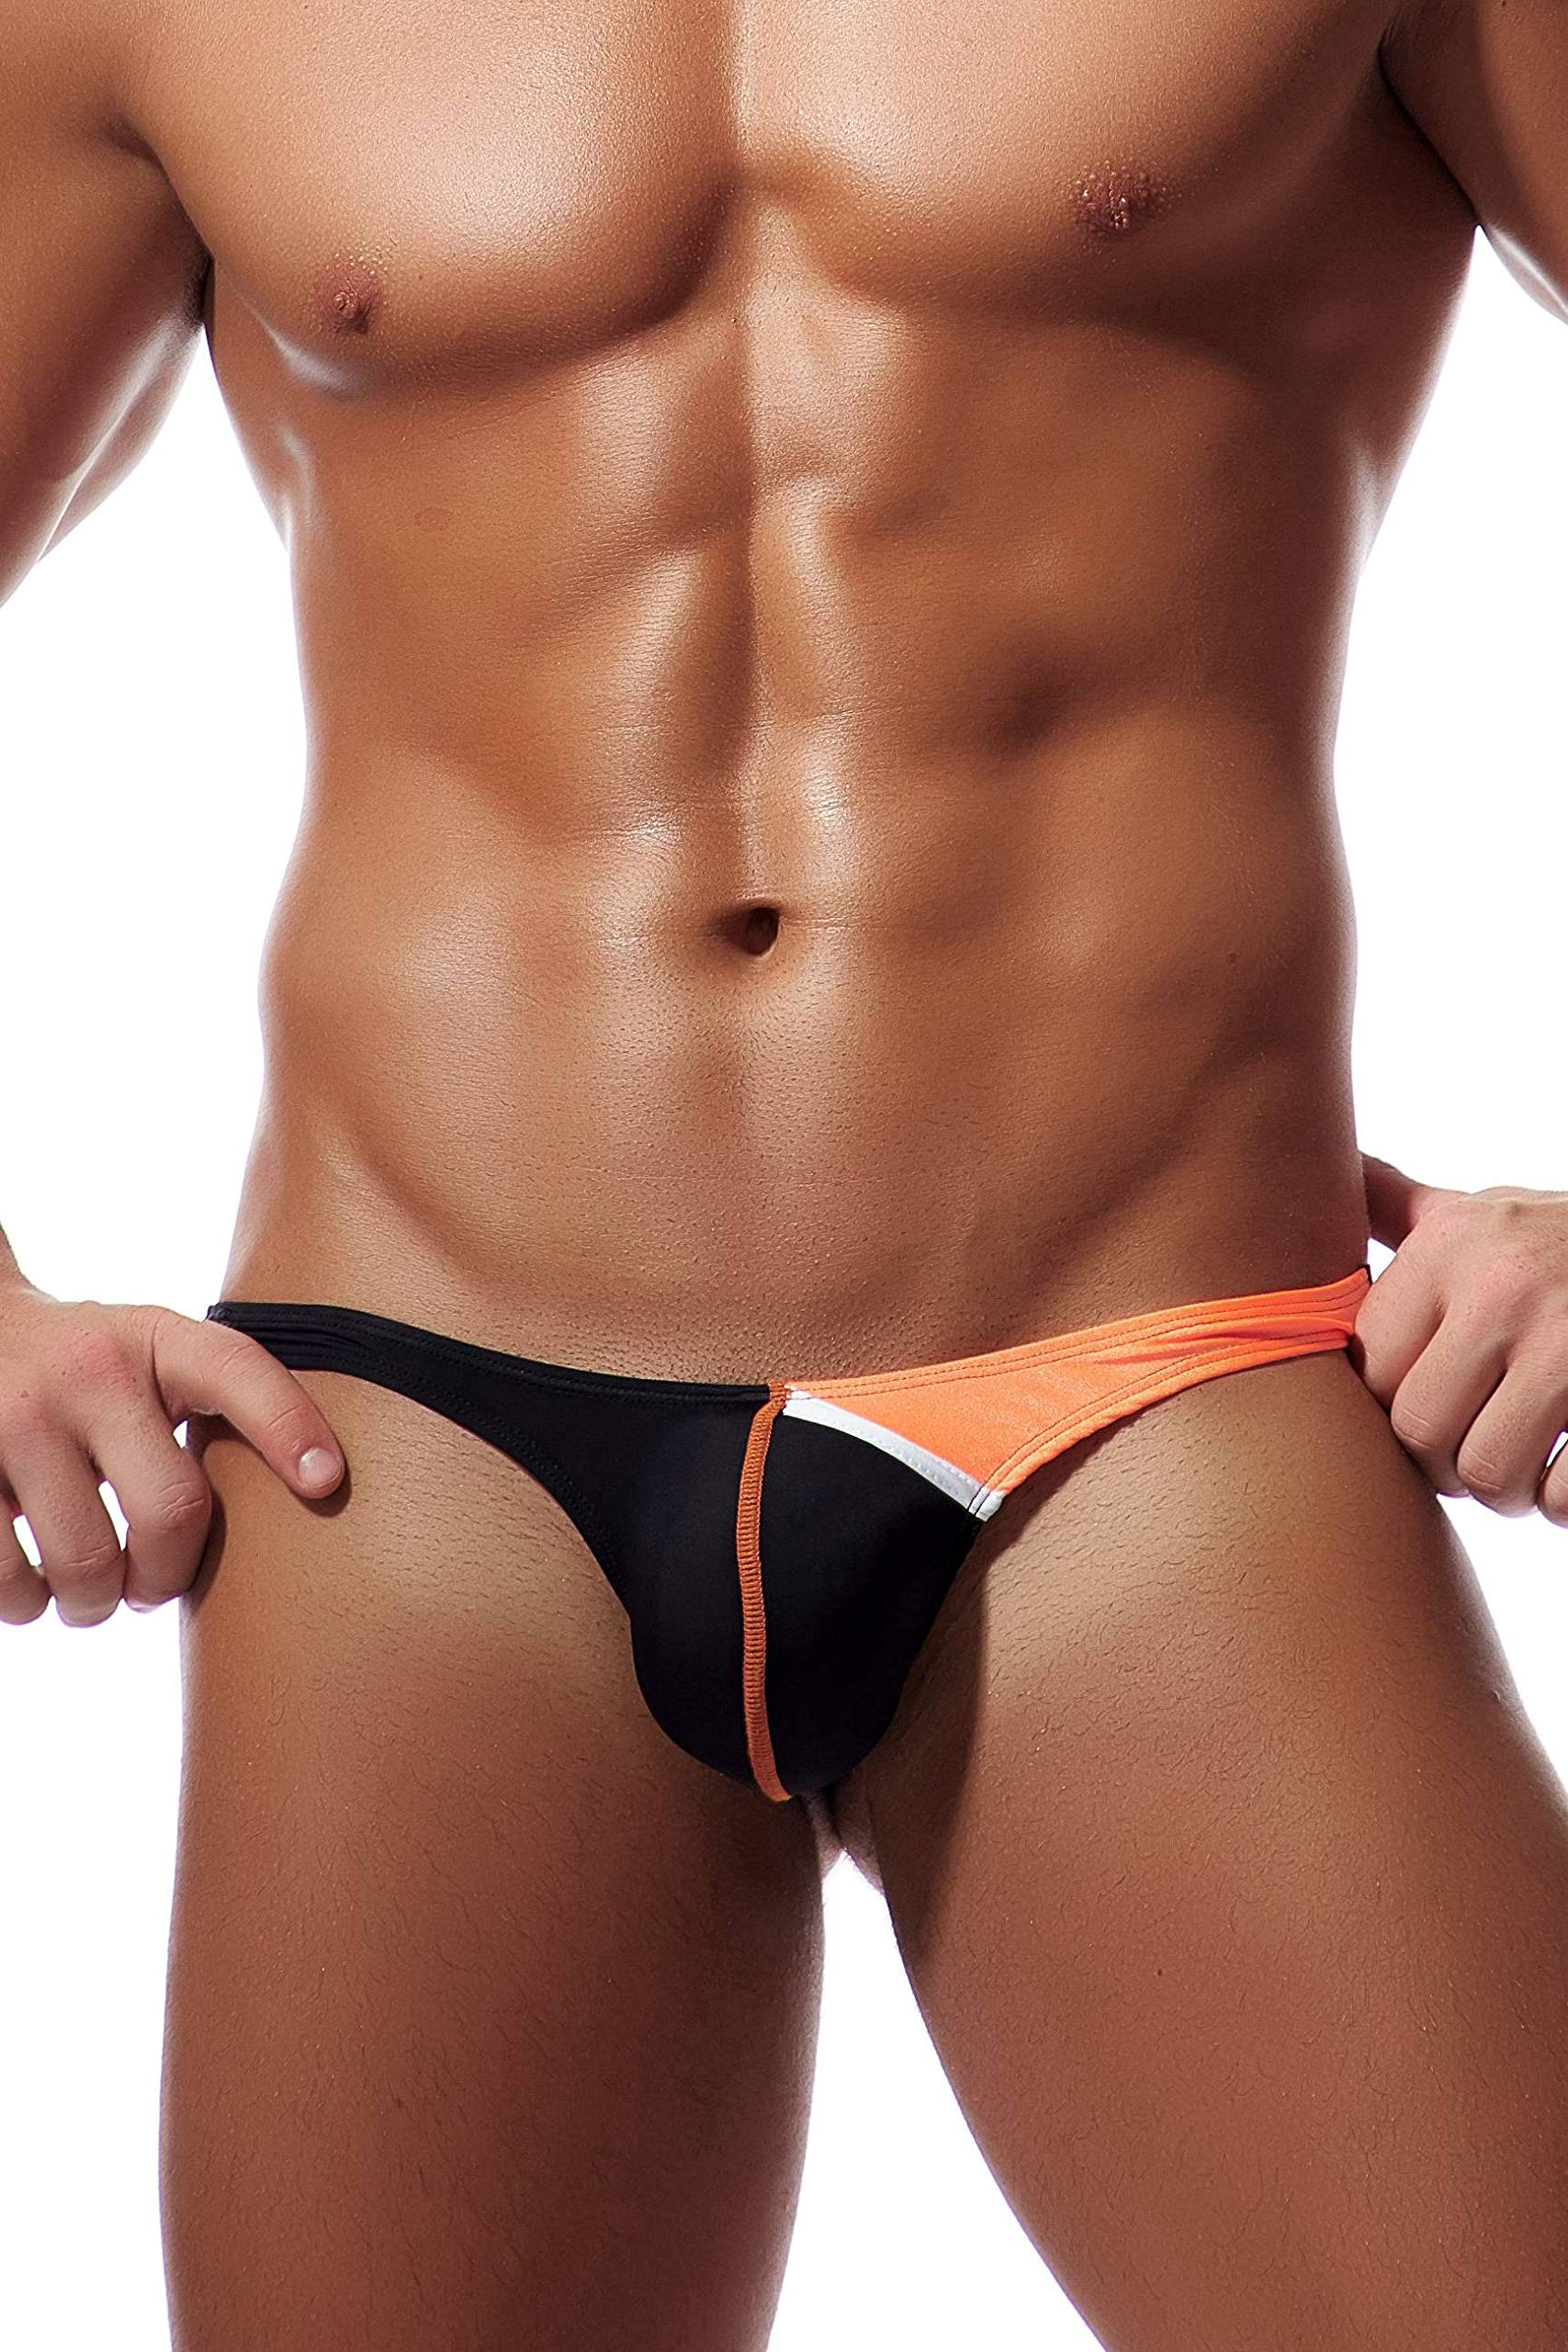 TESOON Mens Low Rise Ice Silk Bikini Briefs Underwear